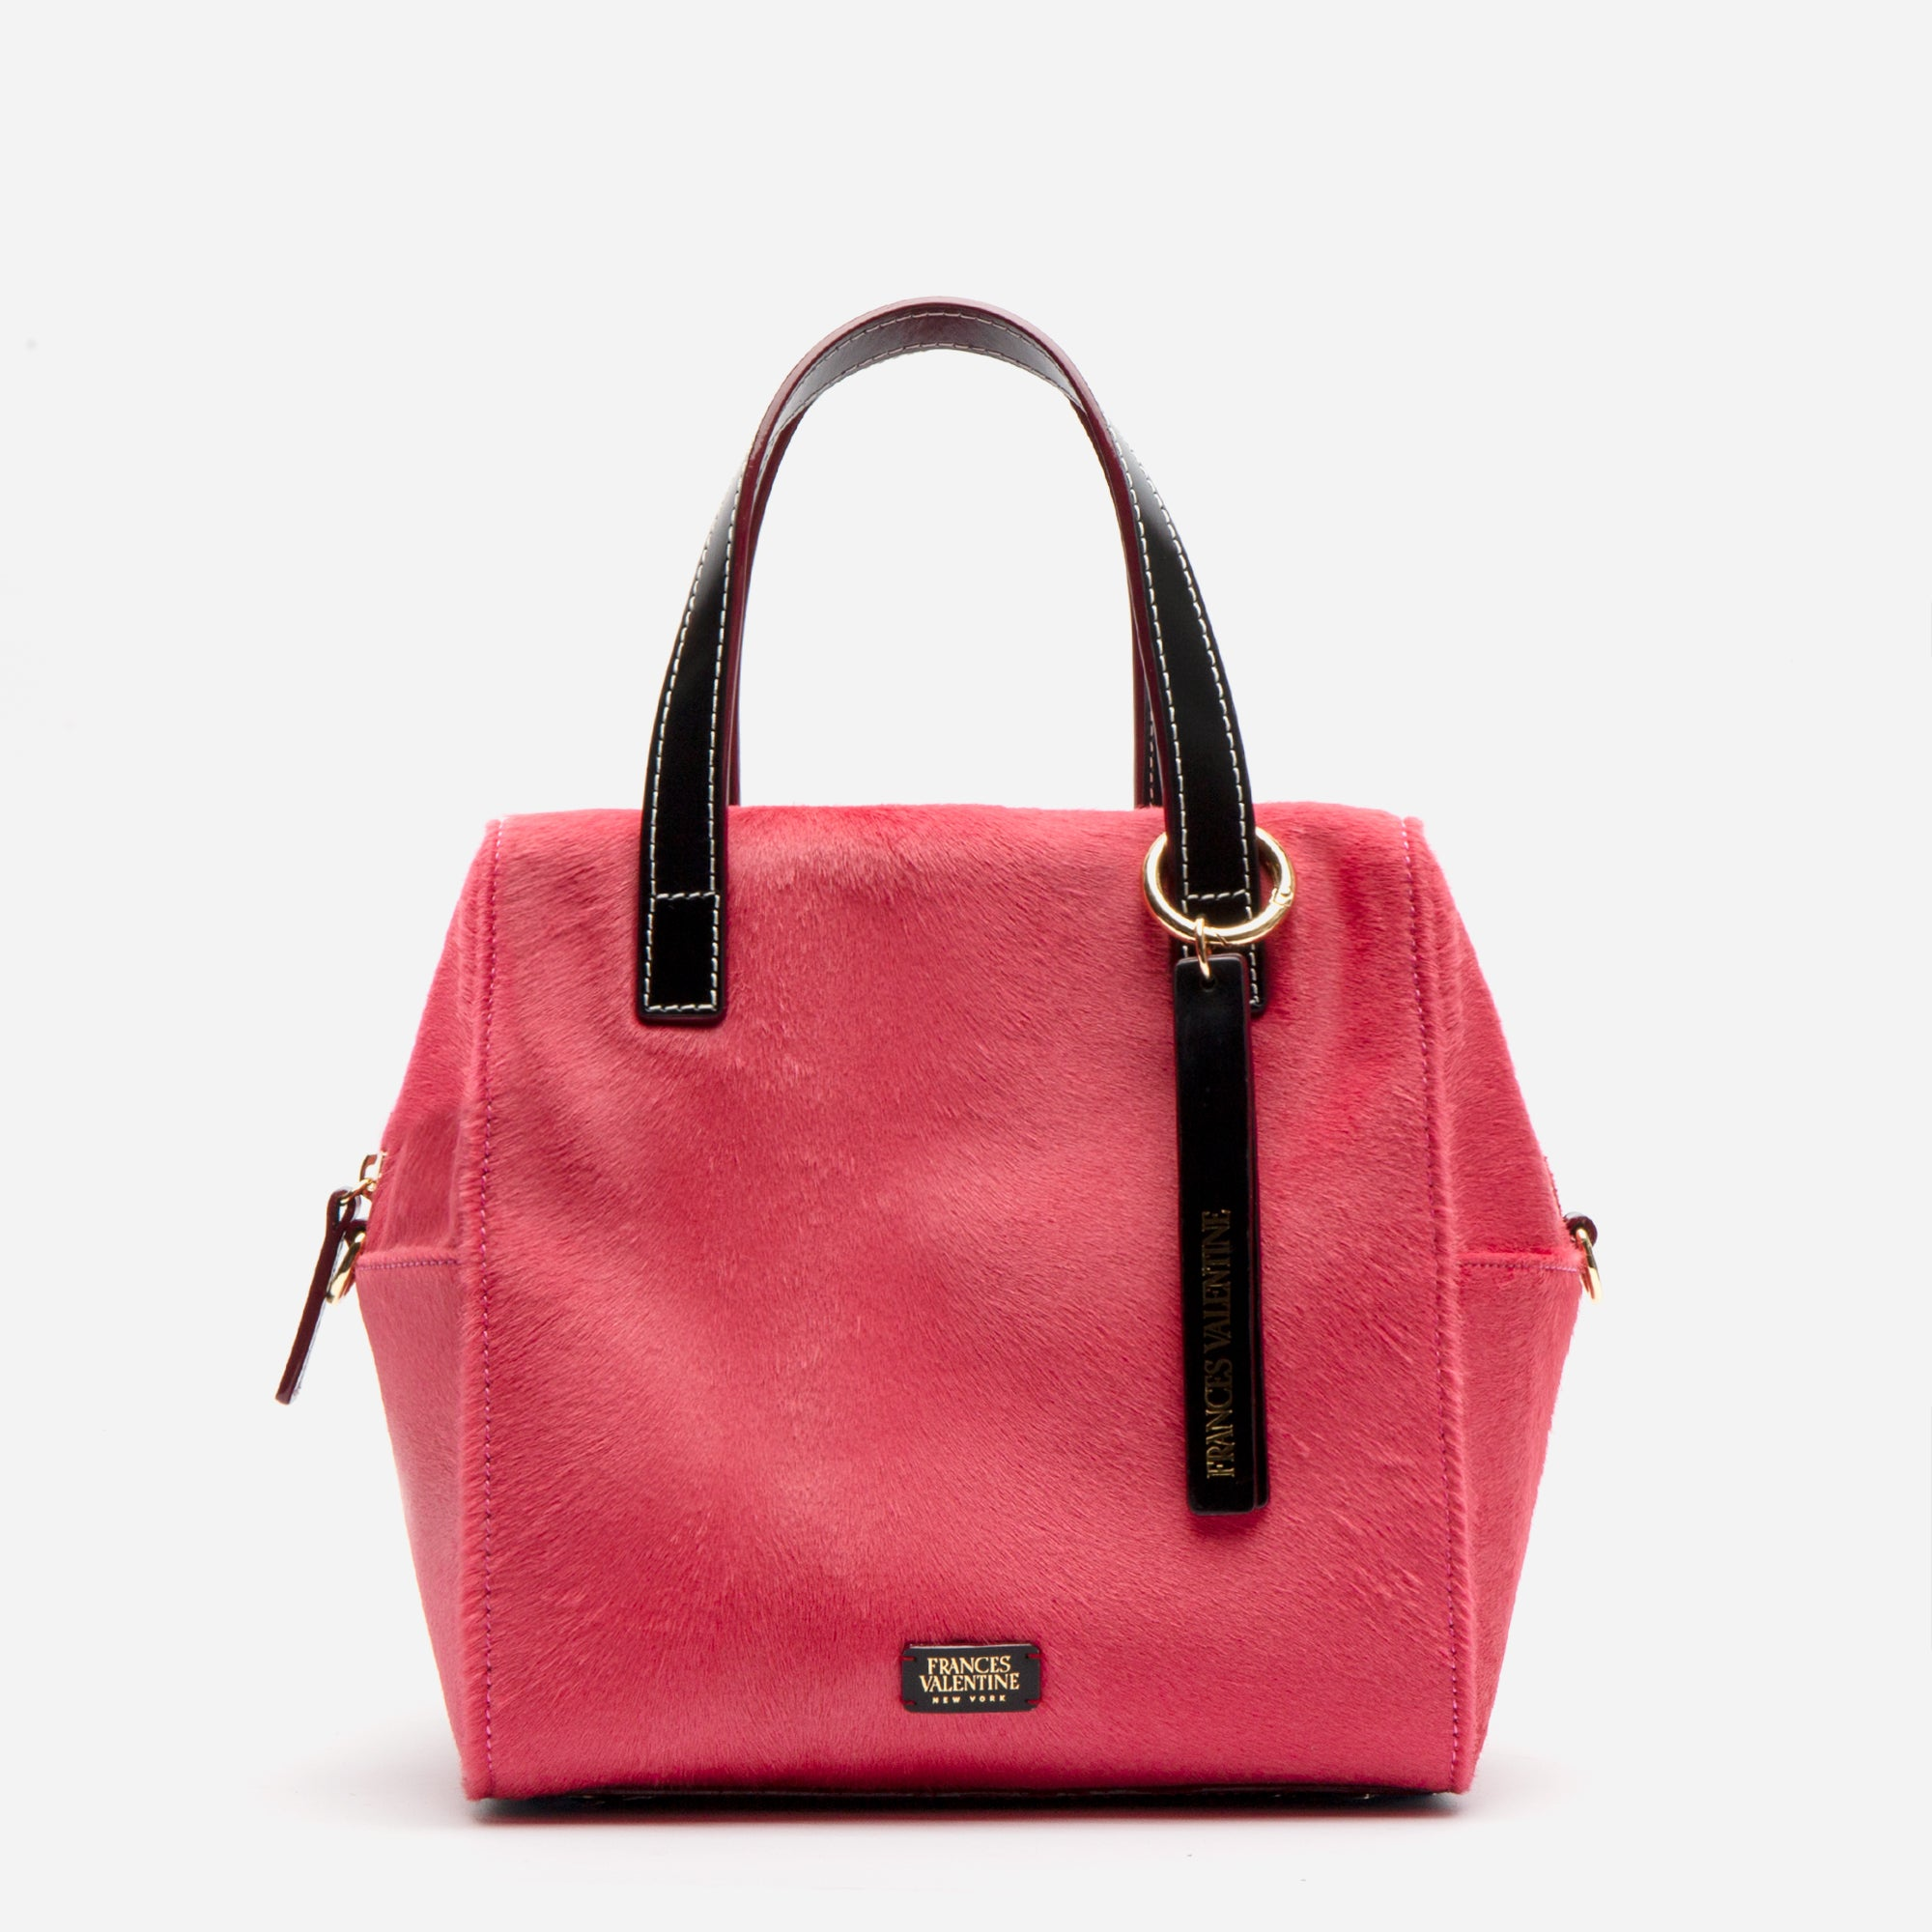 Sabrina Satchel Pink Haircalf - Frances Valentine